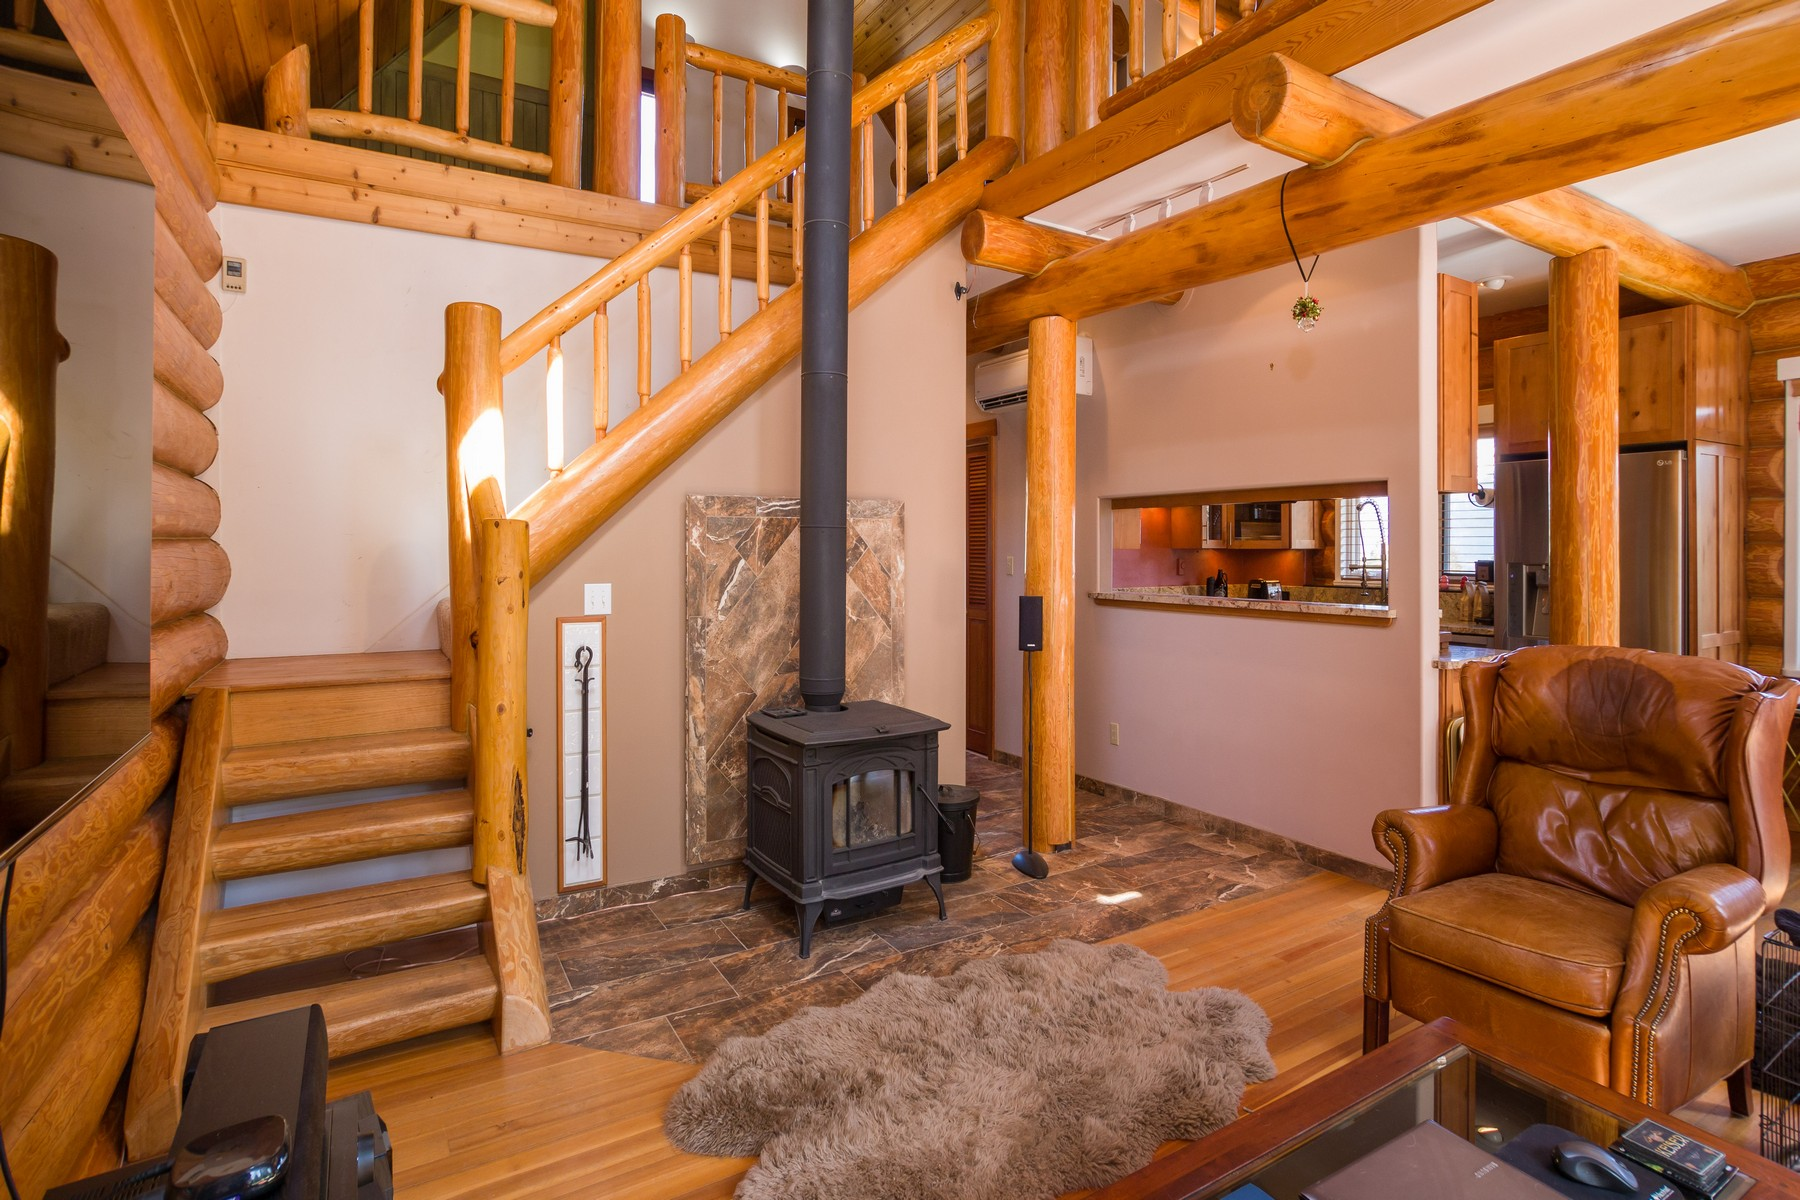 Additional photo for property listing at 1146 Swan Hill Dr , Bigfork, MT 59911 1146  Swan Hill Dr Bigfork, Montana 59911 United States